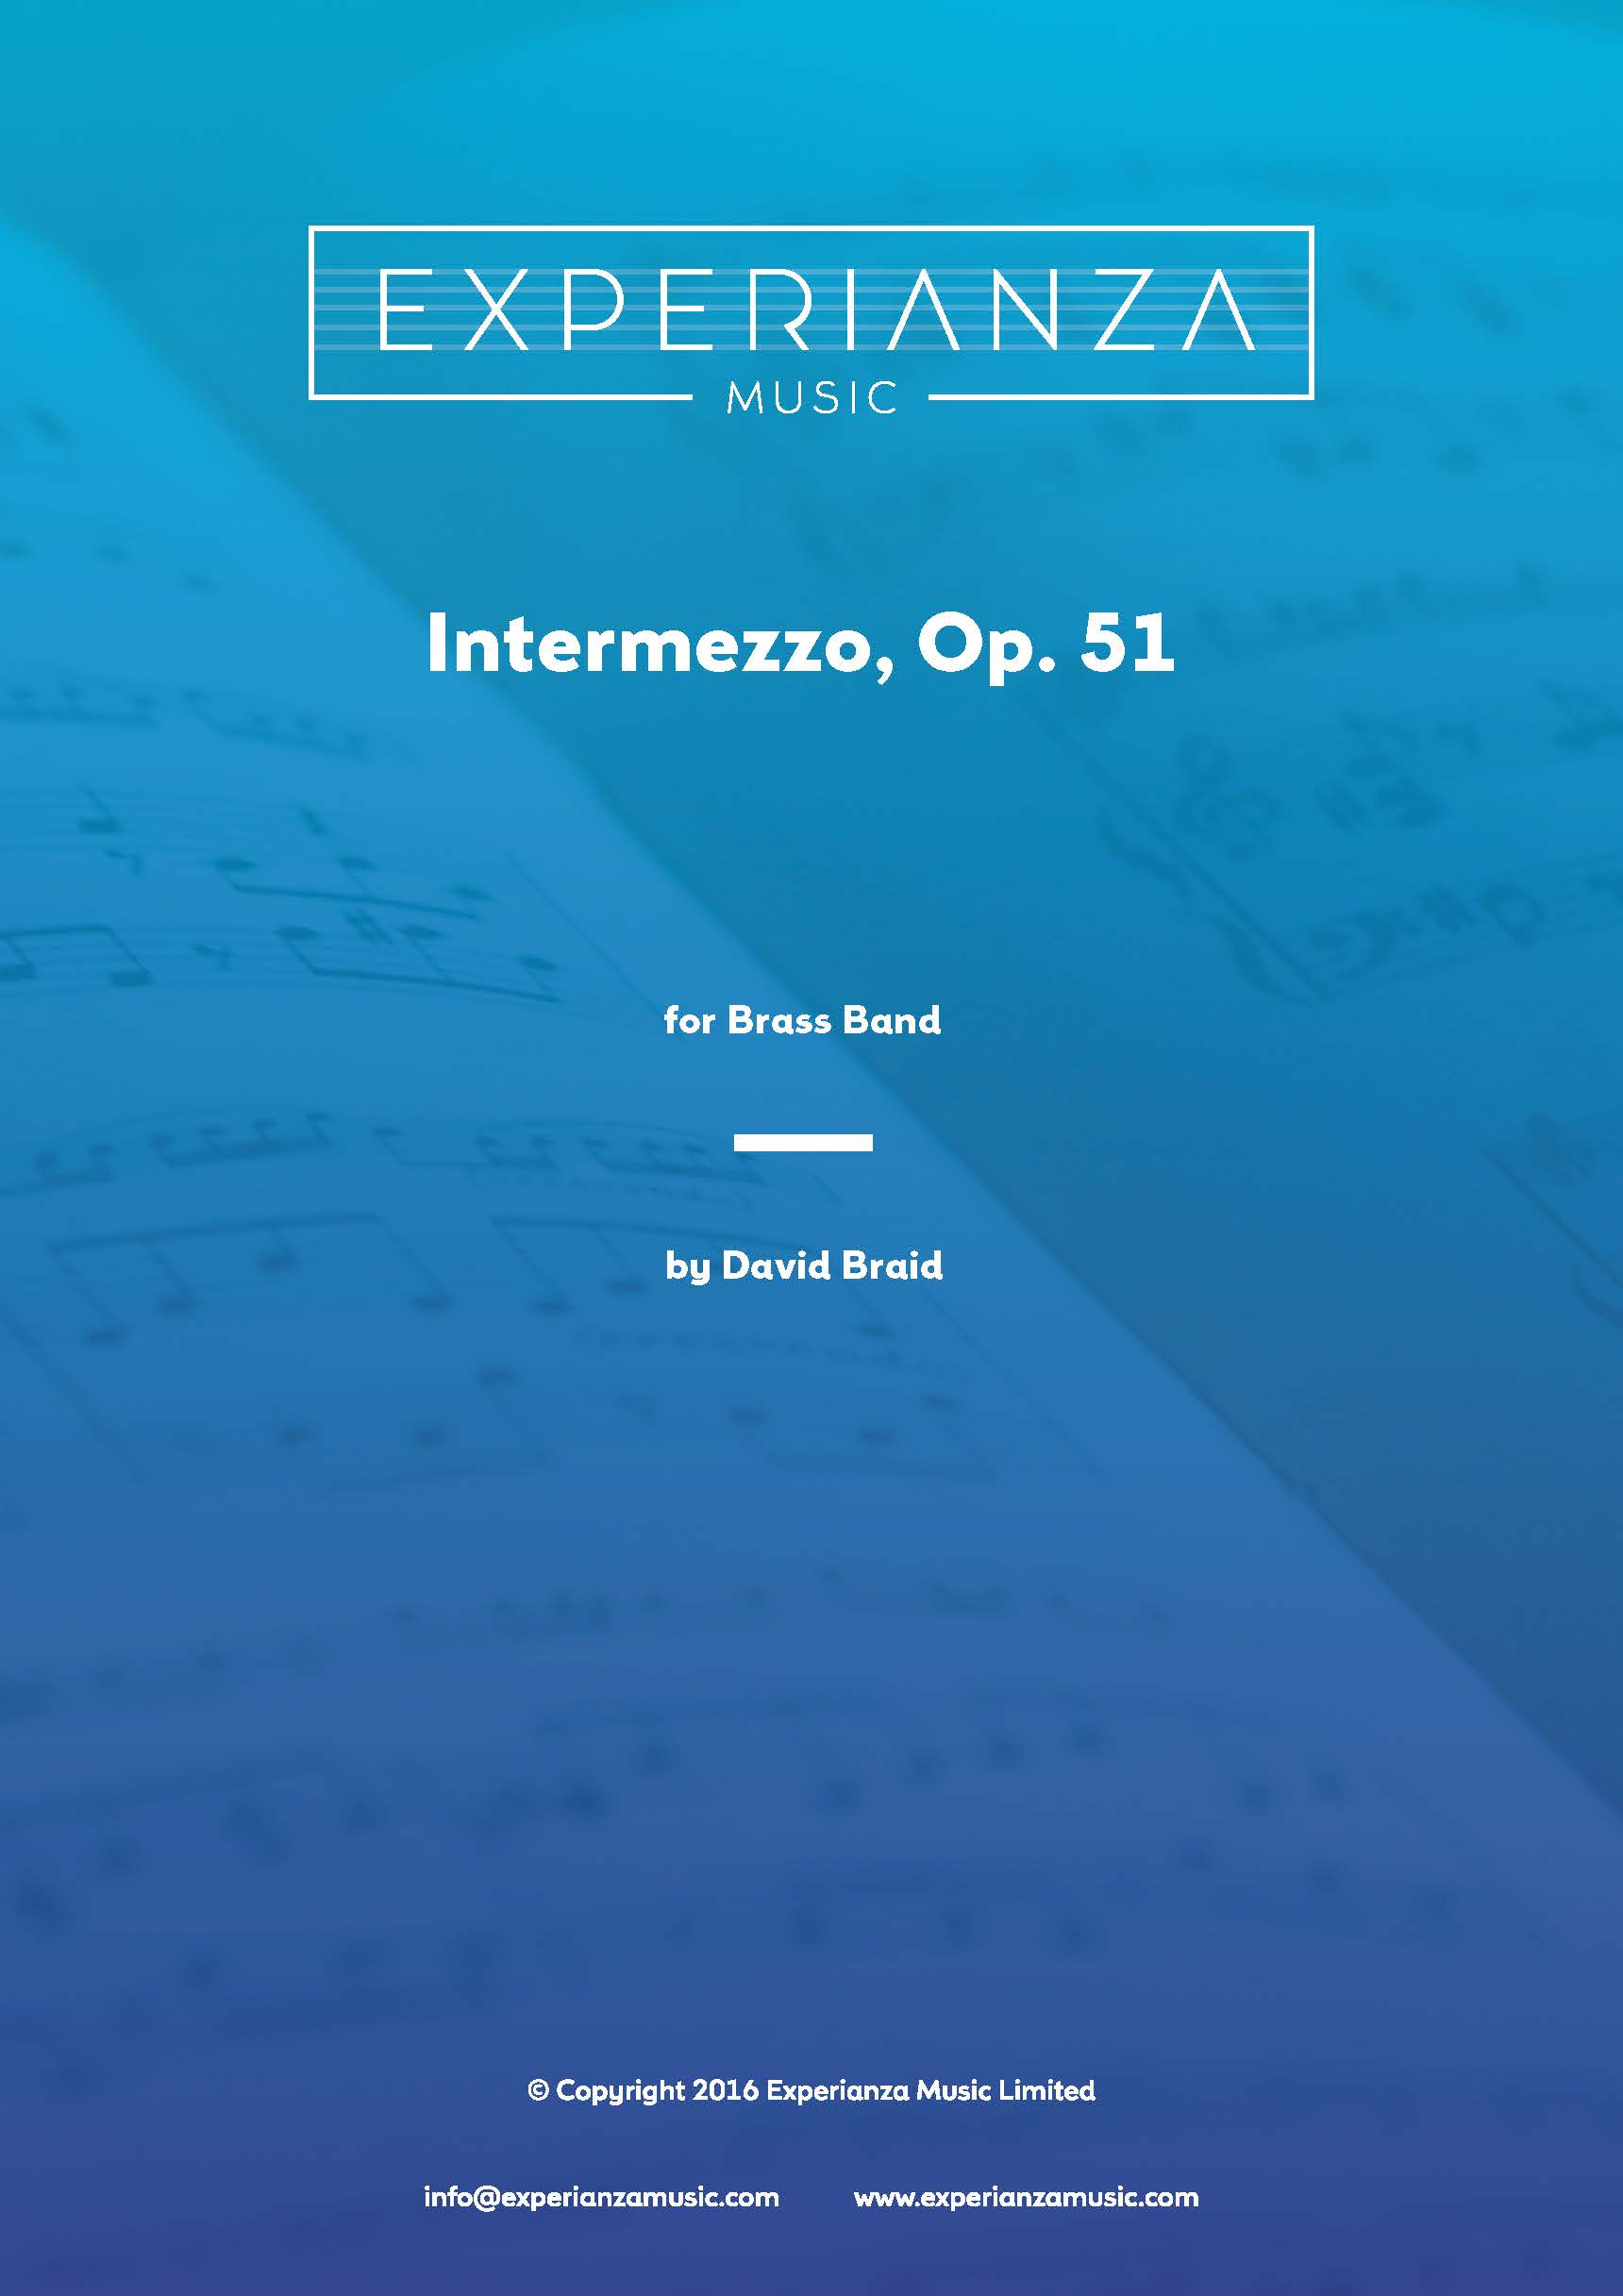 Intermezzo Op. 51 (Brass Band - Score and Parts)